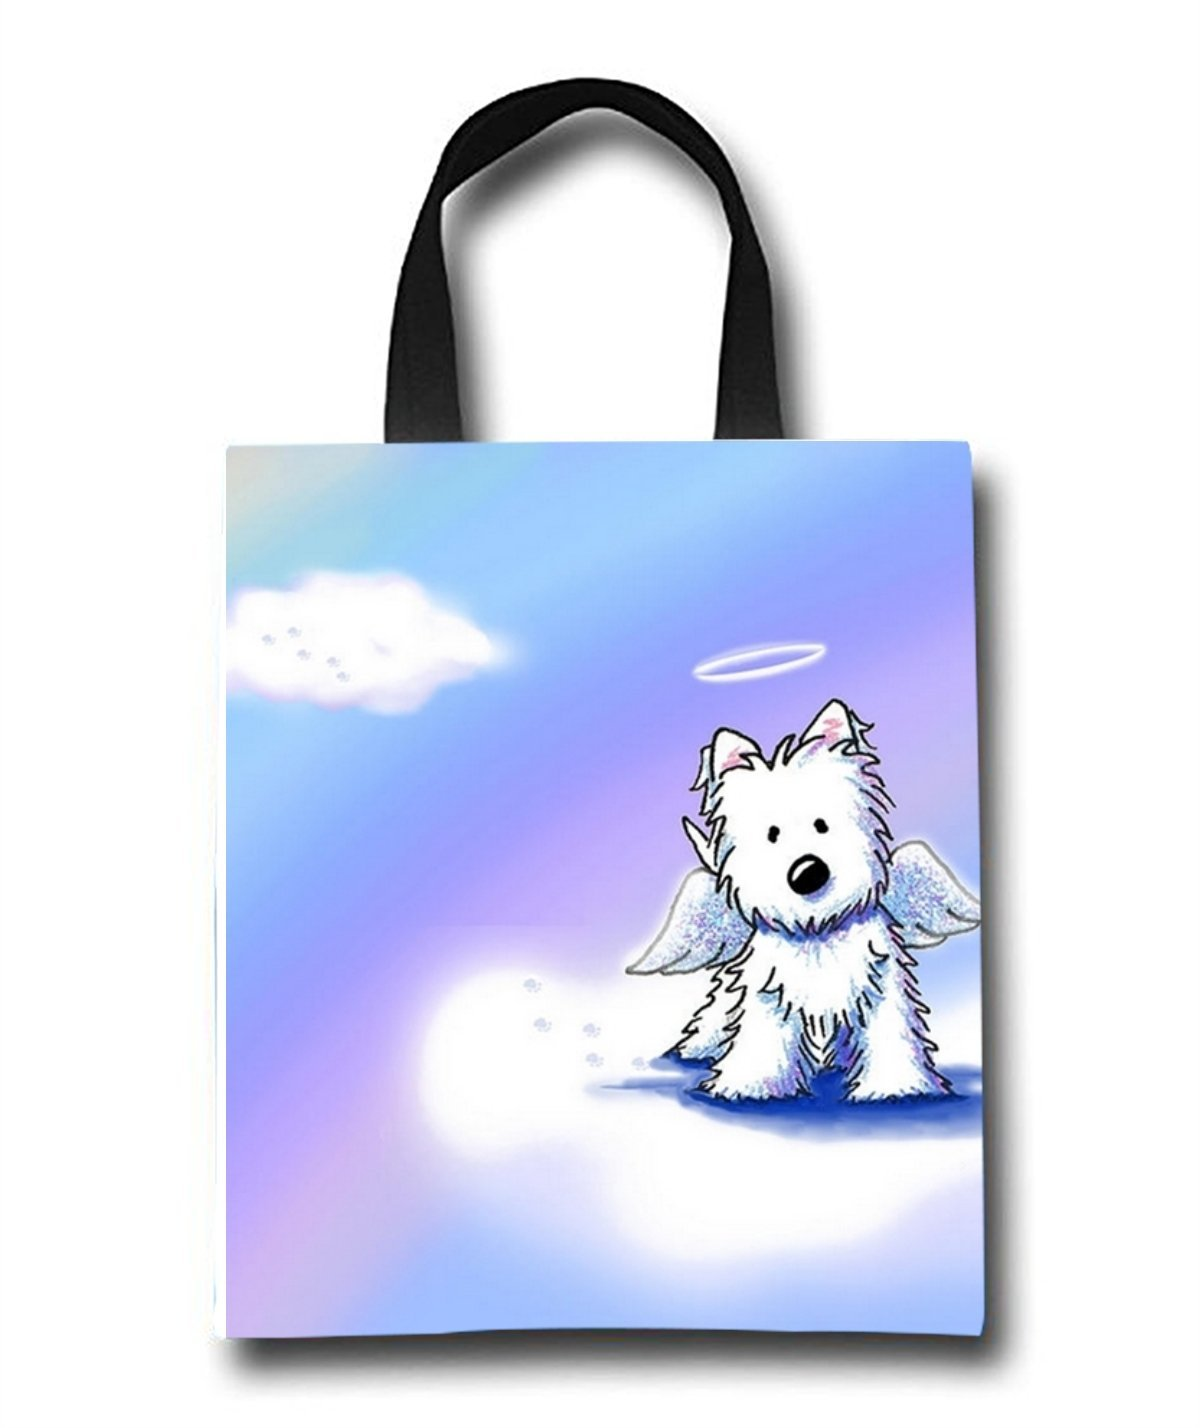 Angel Dog Beach Tote Bag - Toy Tote Bag - Large Lightweight Market, Grocery & Picnic